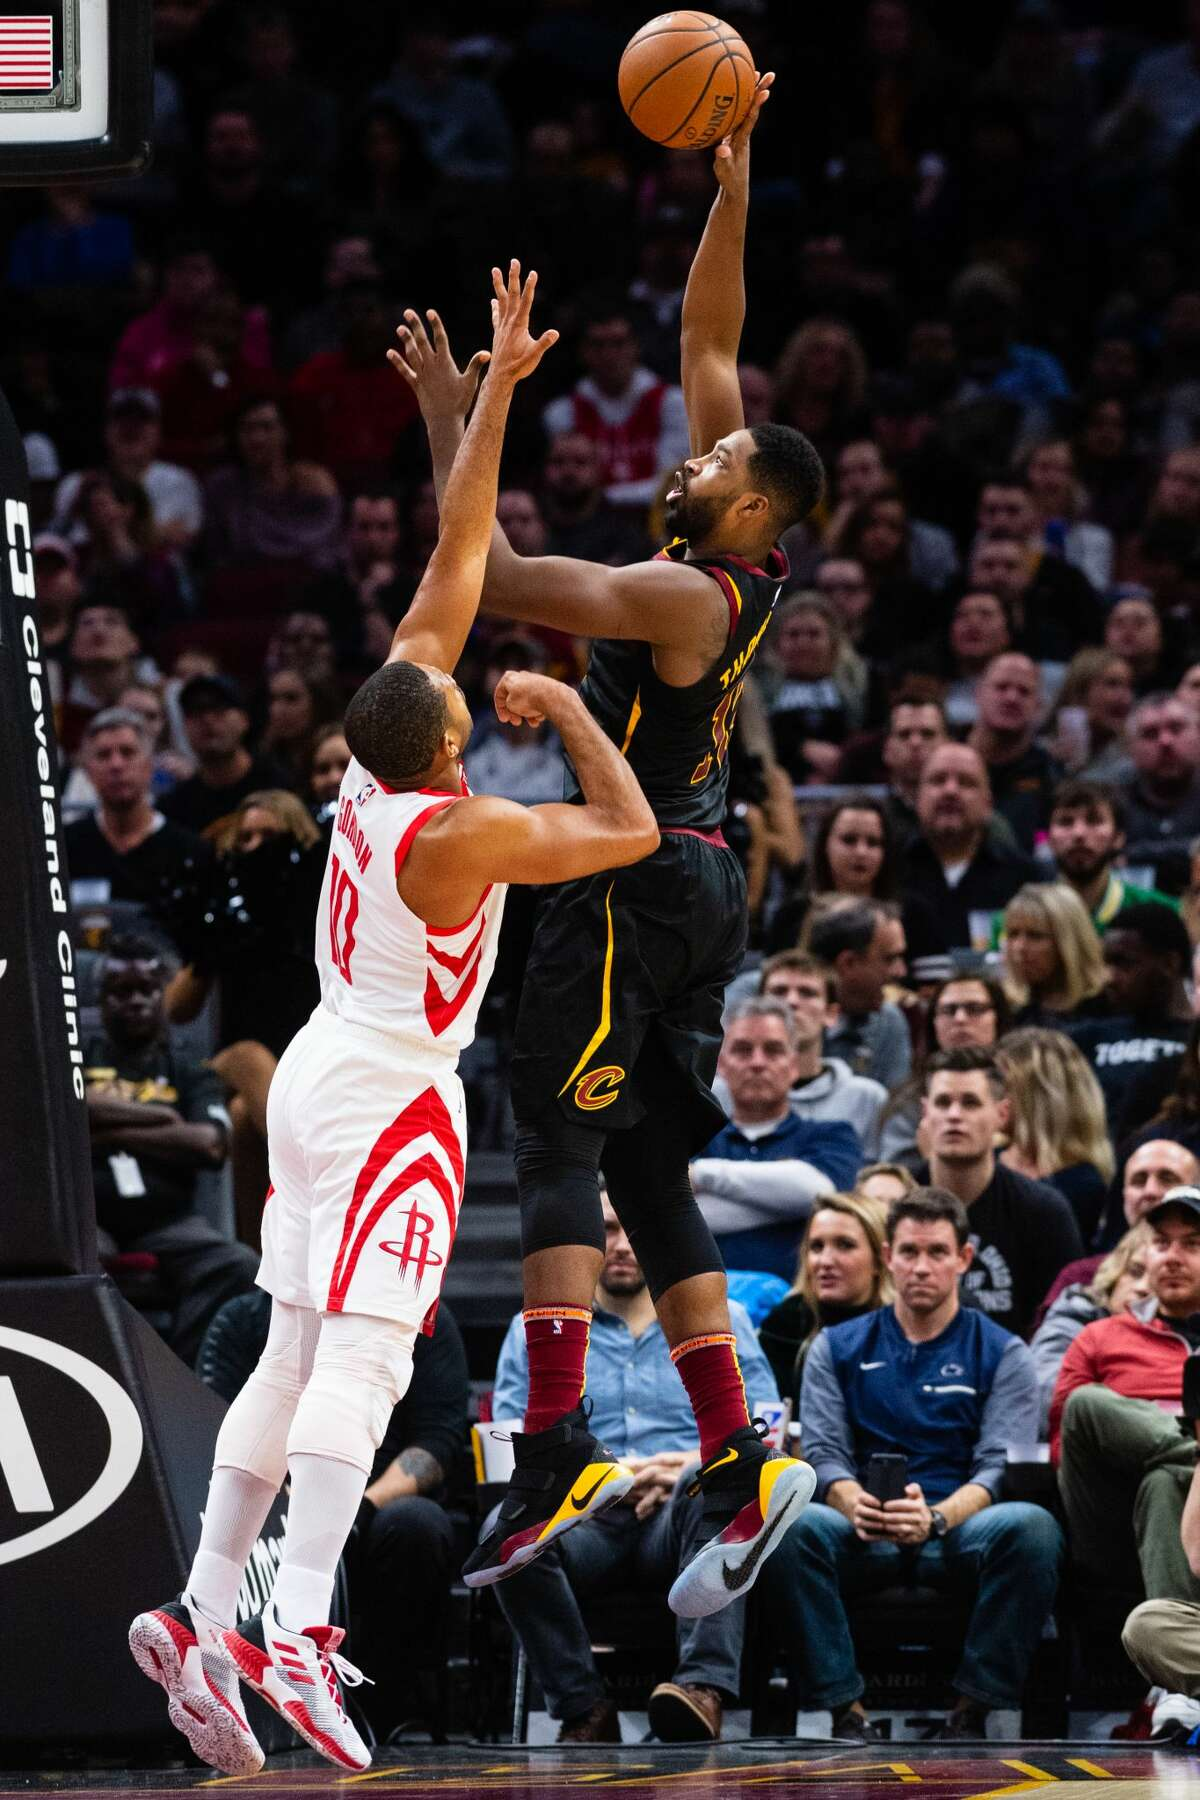 CLEVELAND, OH - NOVEMBER 24: Tristan Thompson #13 of the Cleveland Cavaliers shoots over Eric Gordon #10 of the Houston Rockets during the first half at Quicken Loans Arena on November 24, 2018 in Cleveland, Ohio. NOTE TO USER: User expressly acknowledges and agrees that, by downloading and/or using this photograph, user is consenting to the terms and conditions of the Getty Images License Agreement. (Photo by Jason Miller/Getty Images)